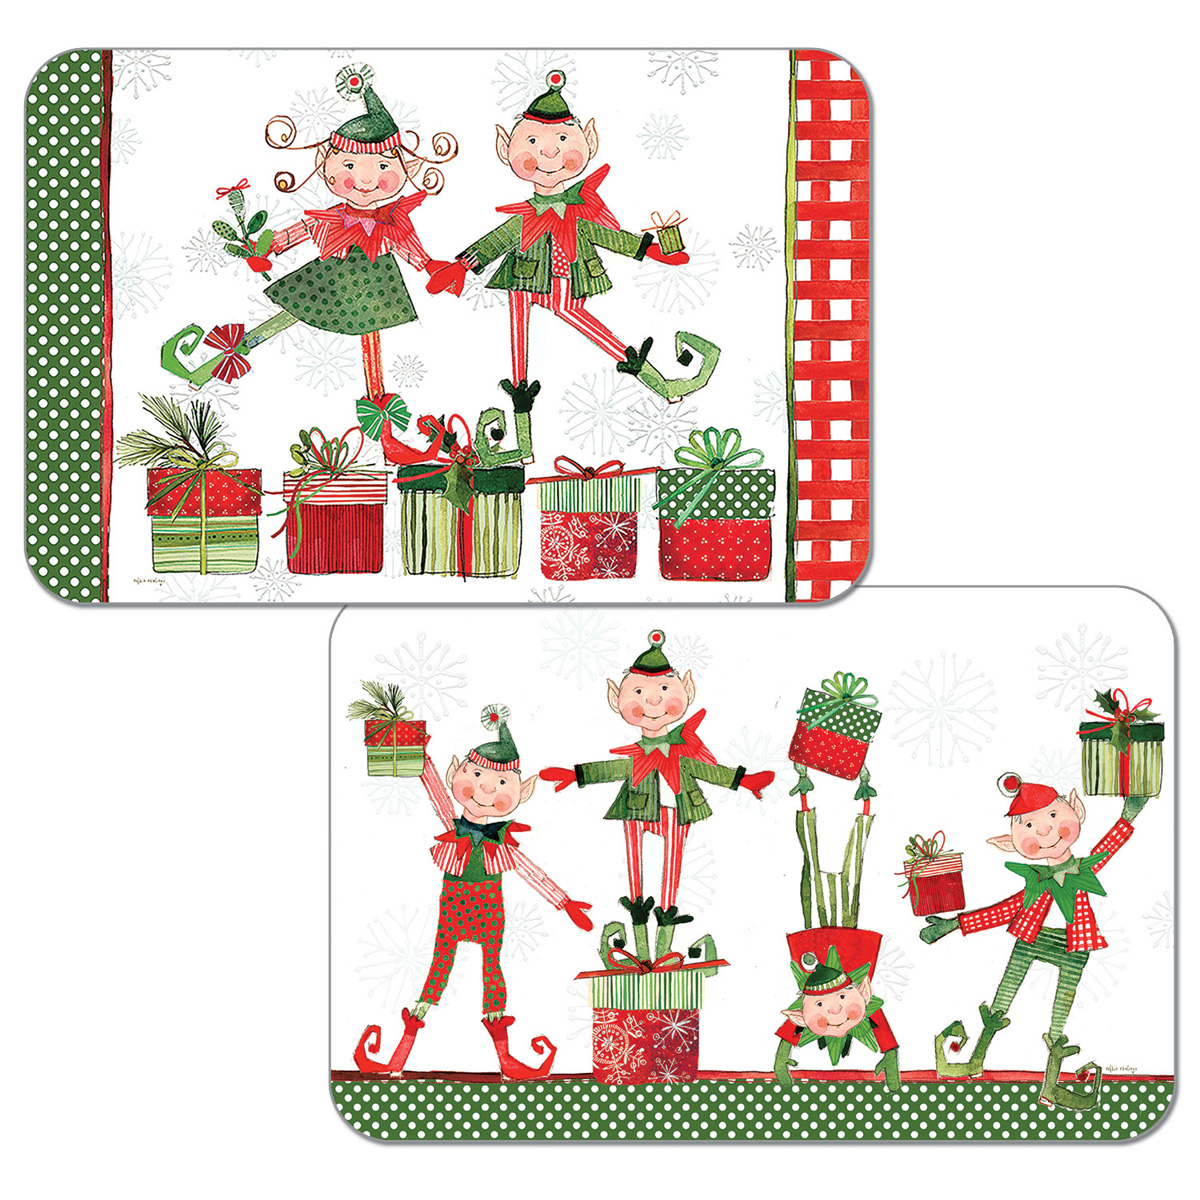 Christmas Elves.Placemat Christmas Elves